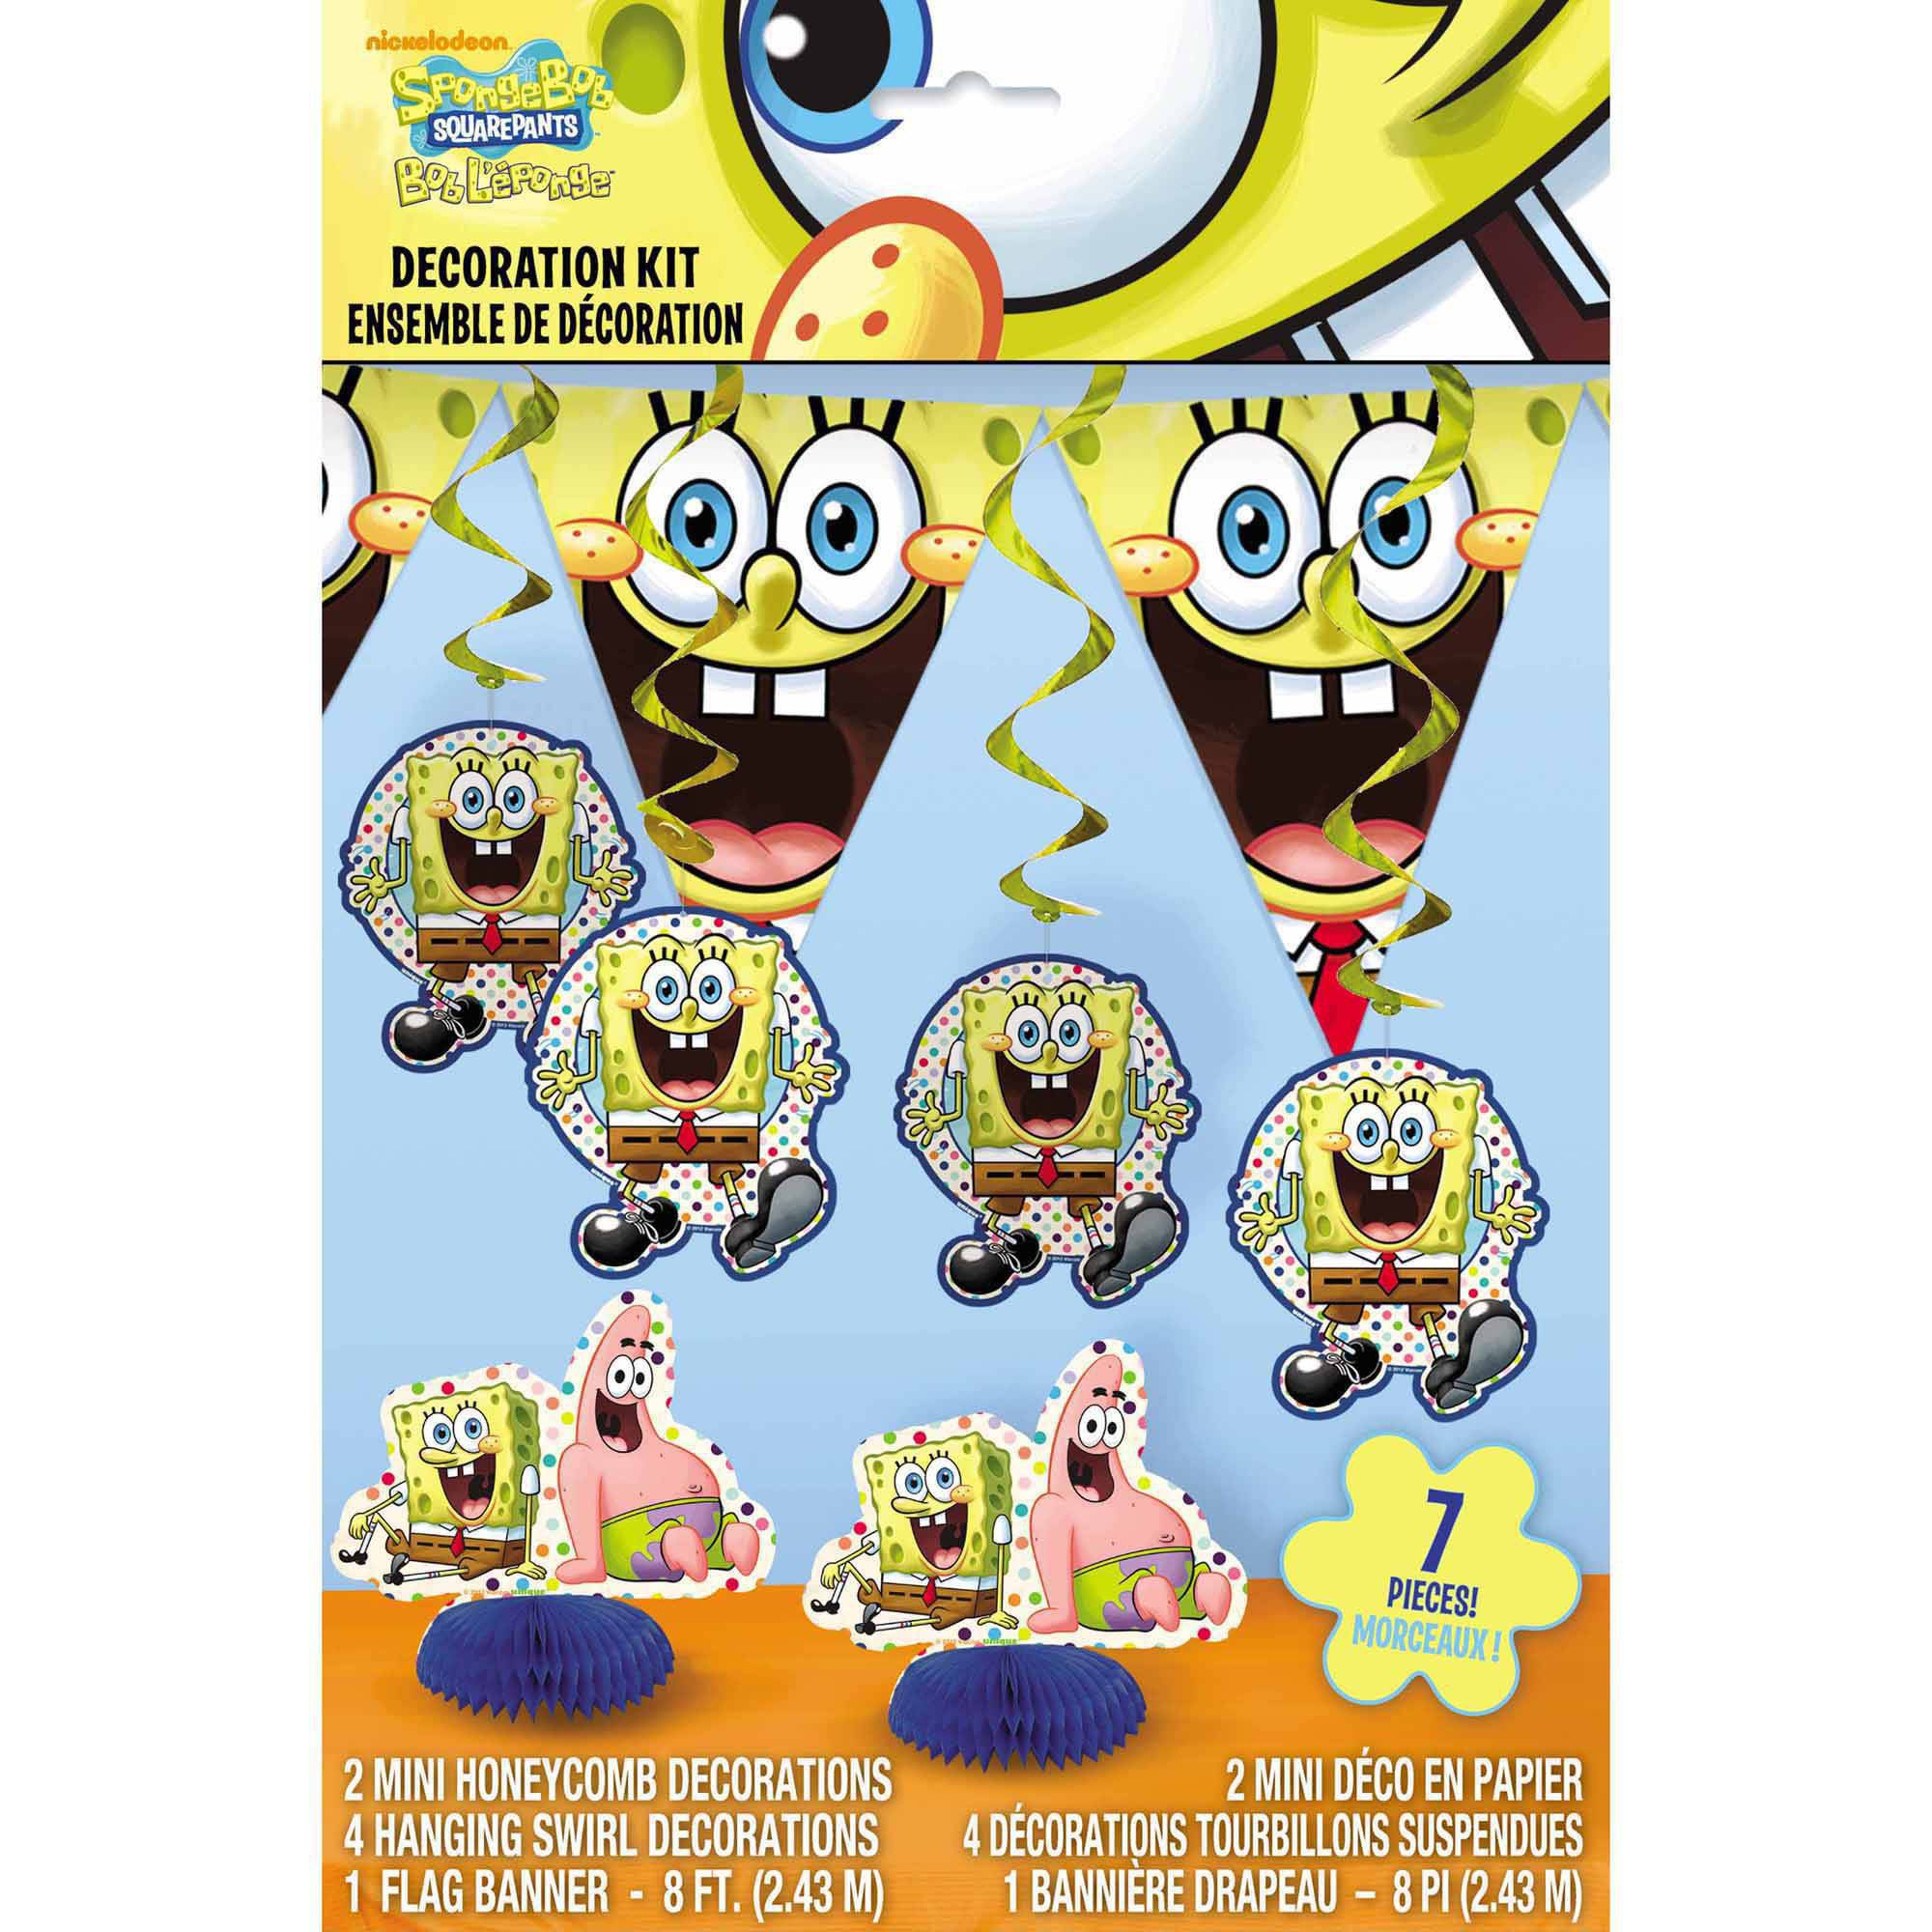 SpongeBob SquarePants Decorating Kit, 7pc